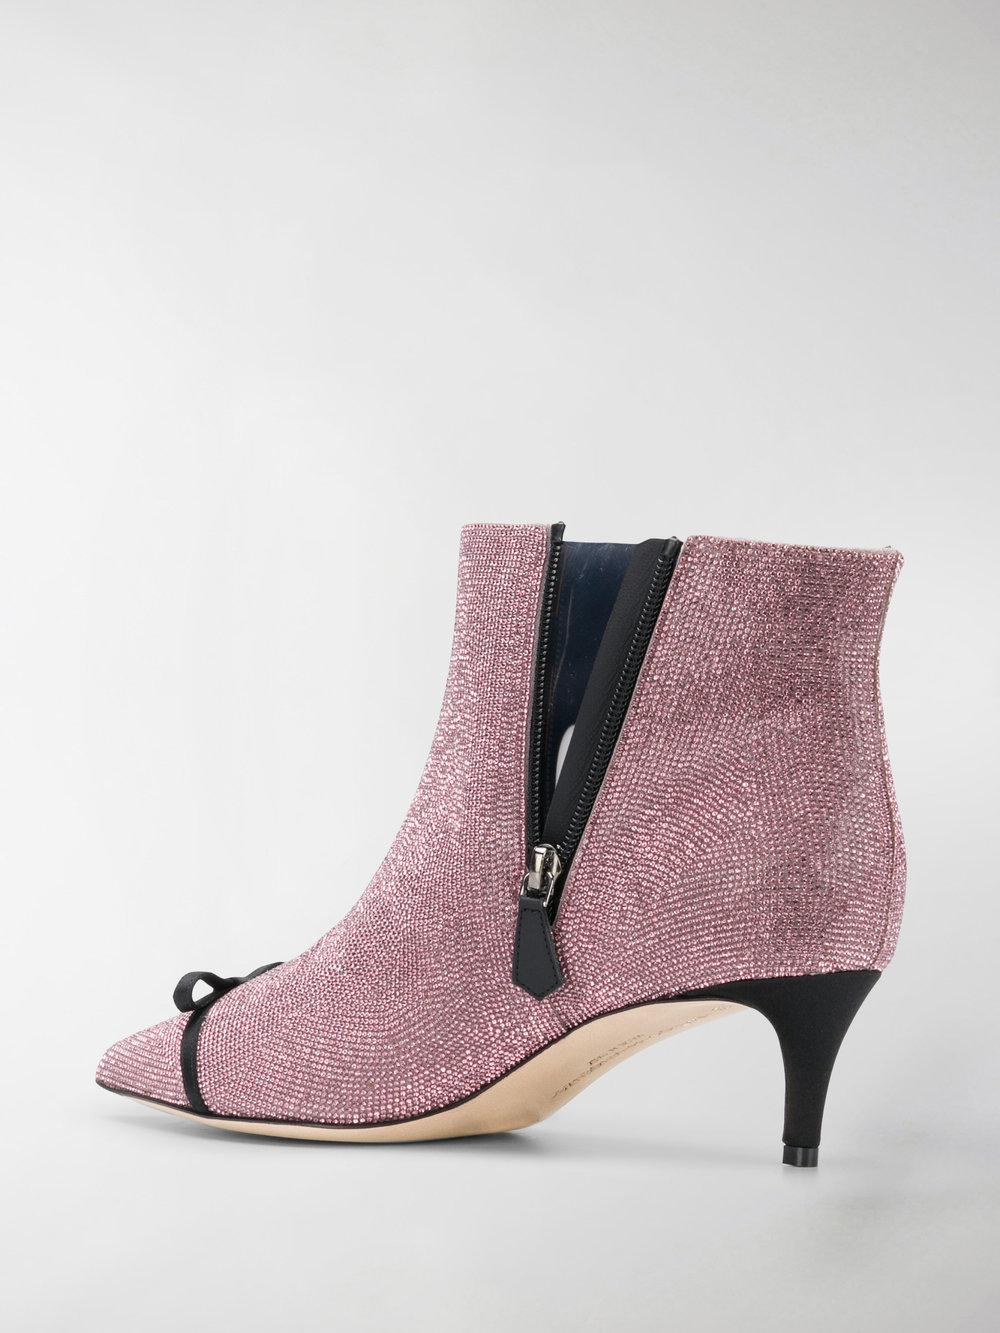 Marco De Vincenzo Women's Mxv107a3xsf13rt Pink Leather Ankle Boots